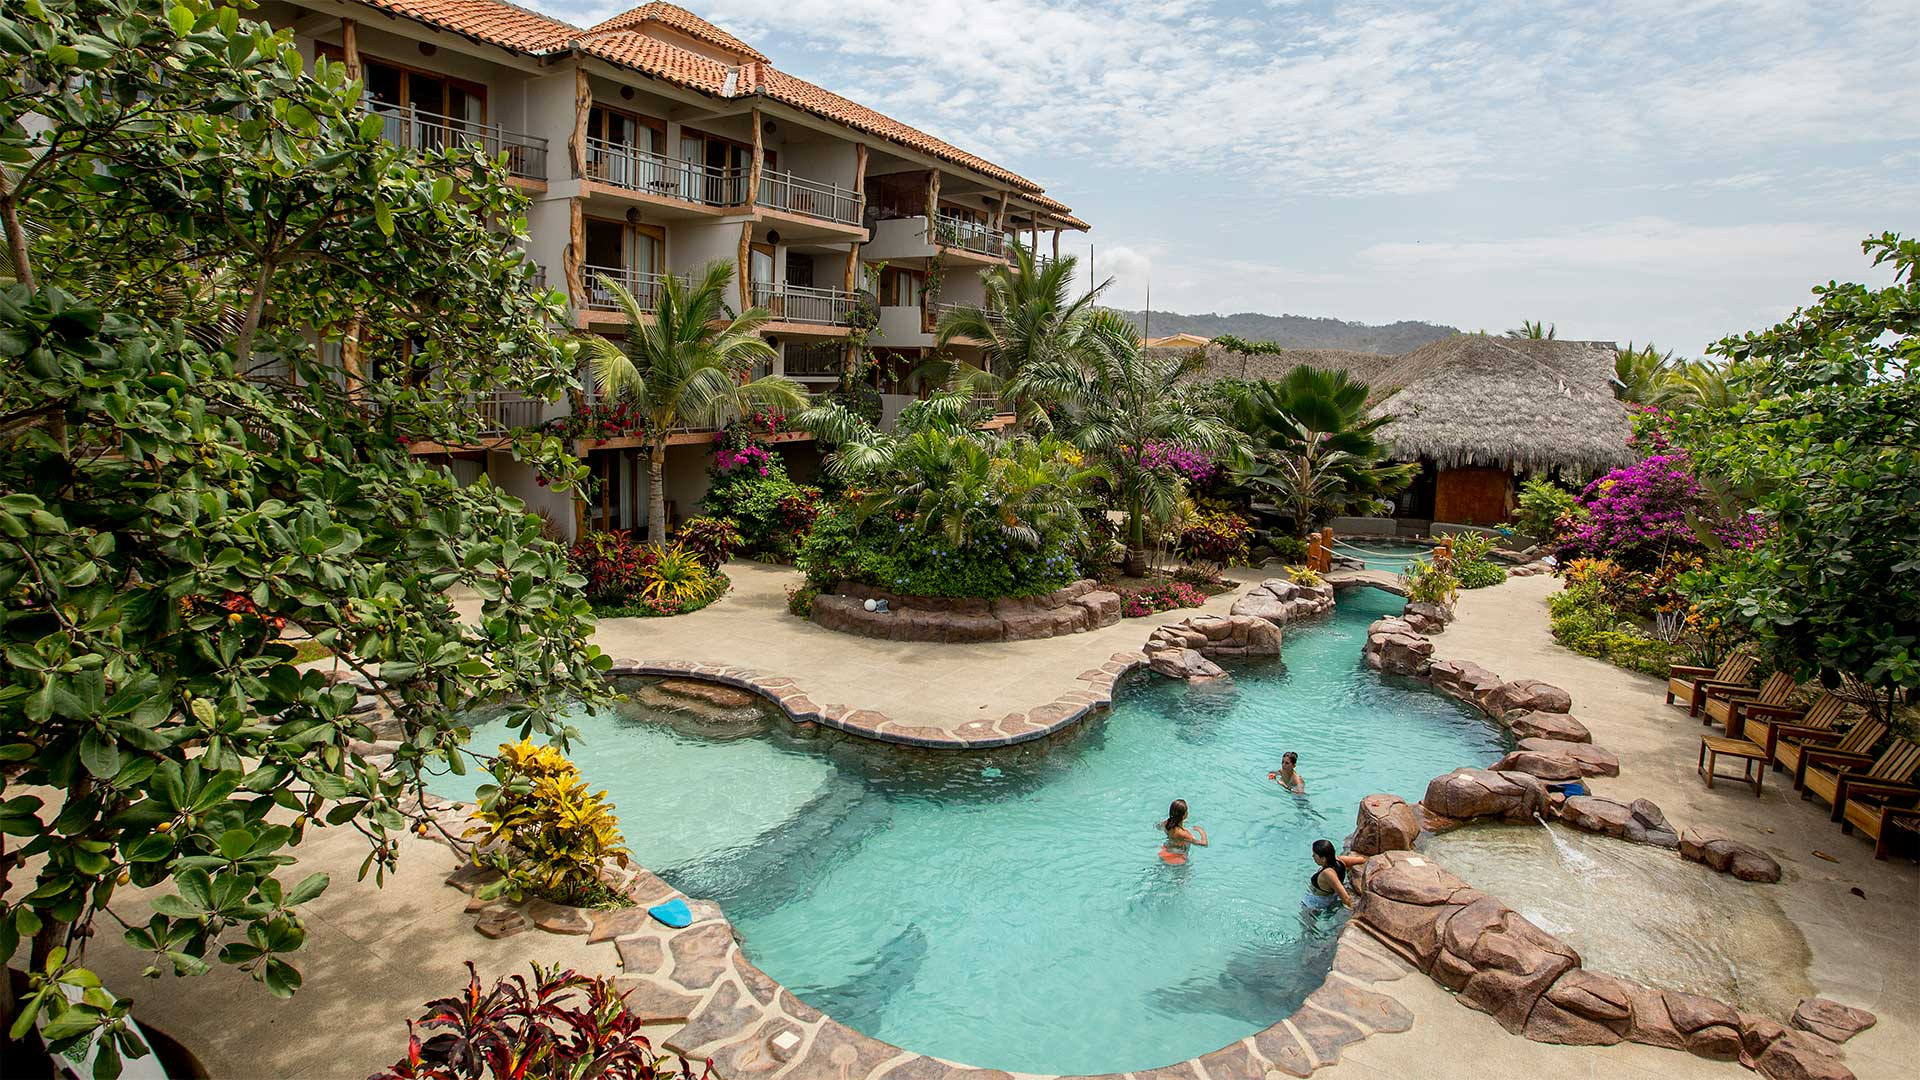 One Of Ecuador S Finest Beach Hotels Canoa Hotel In Manabí Province